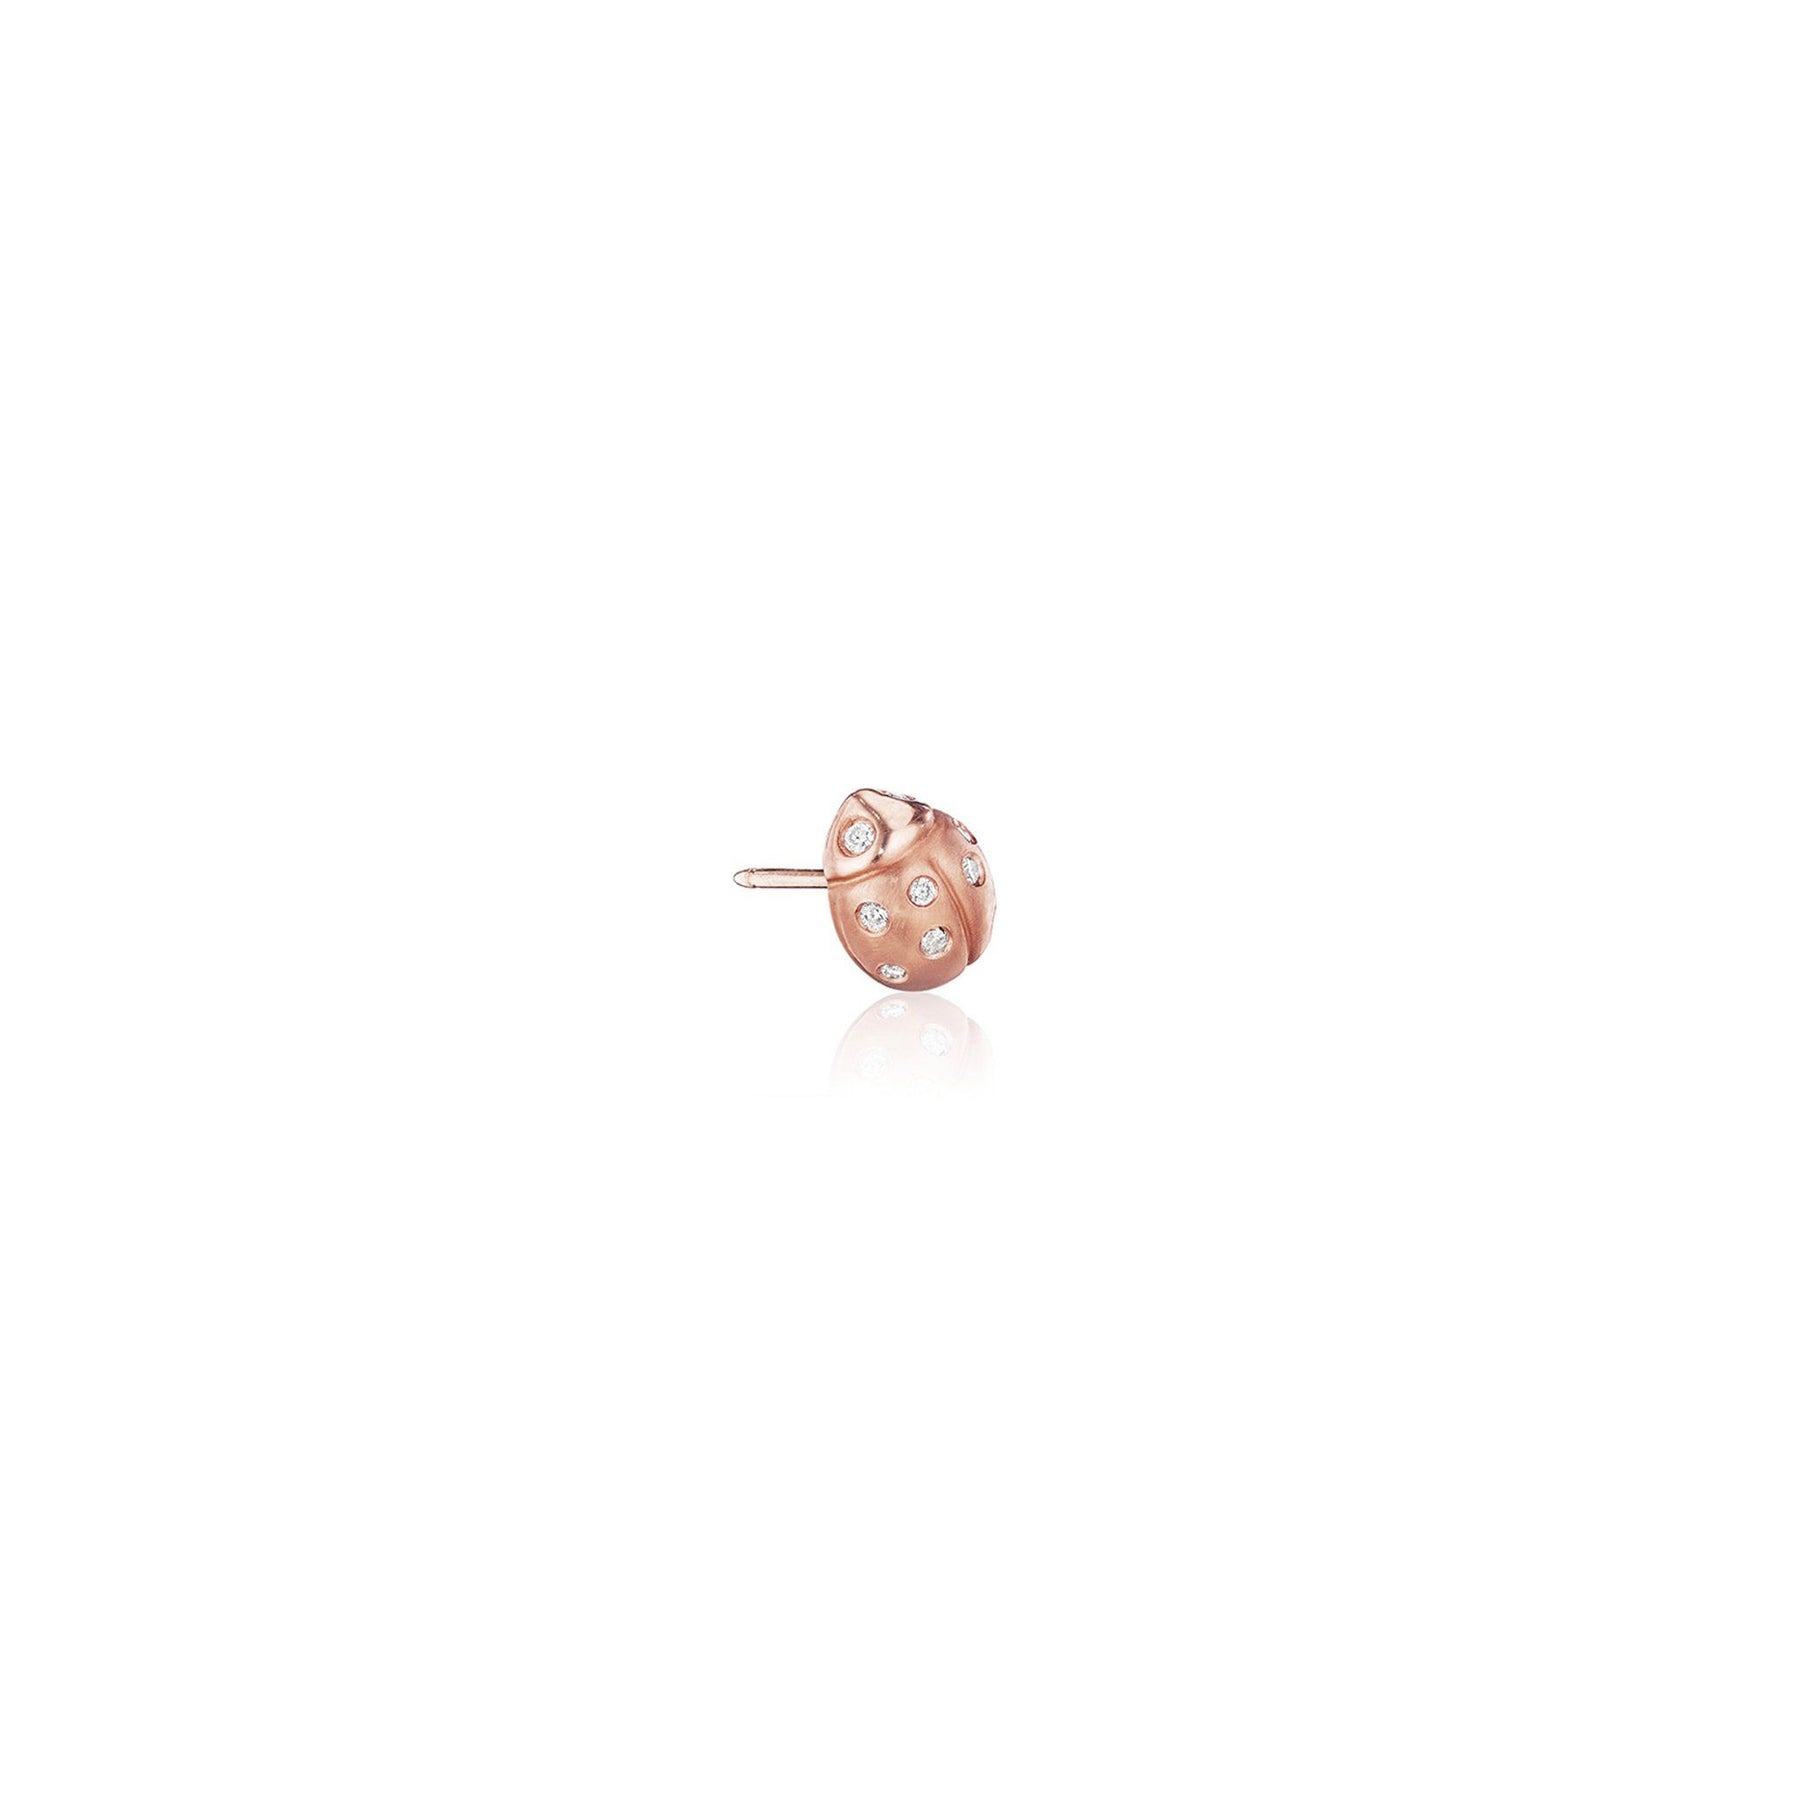 Mimi-So-Wonderland-Diamond-Ladybug-Single-Stud-Earring_18k Rose Gold